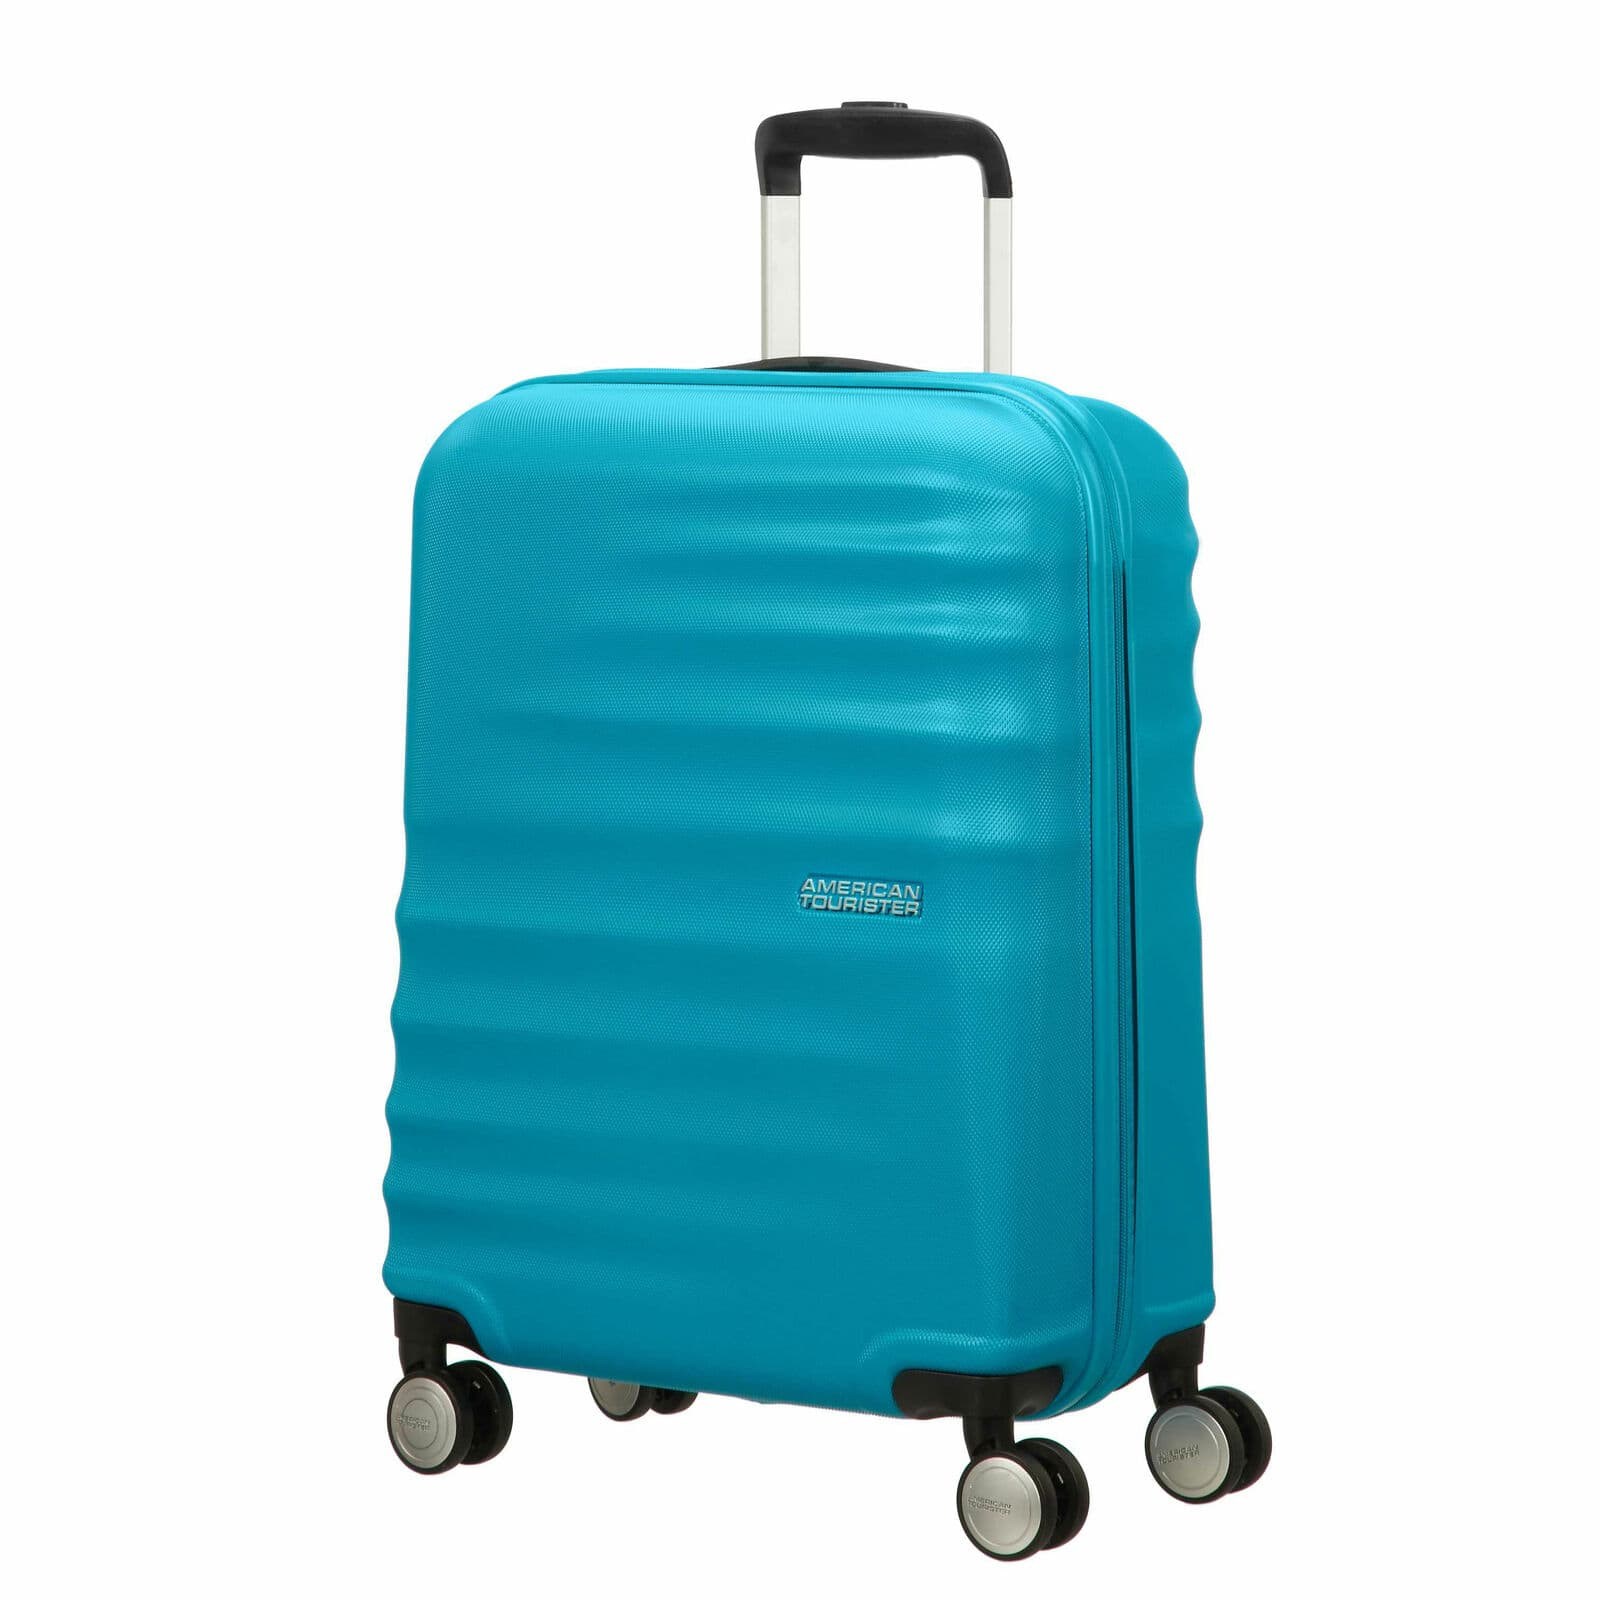 "28"" American Tourister Wavebreaker Spinner Luggage (Summer Sky or Hot Pink) for $49.99 + Free Shipping (eBay Daily Deal)"